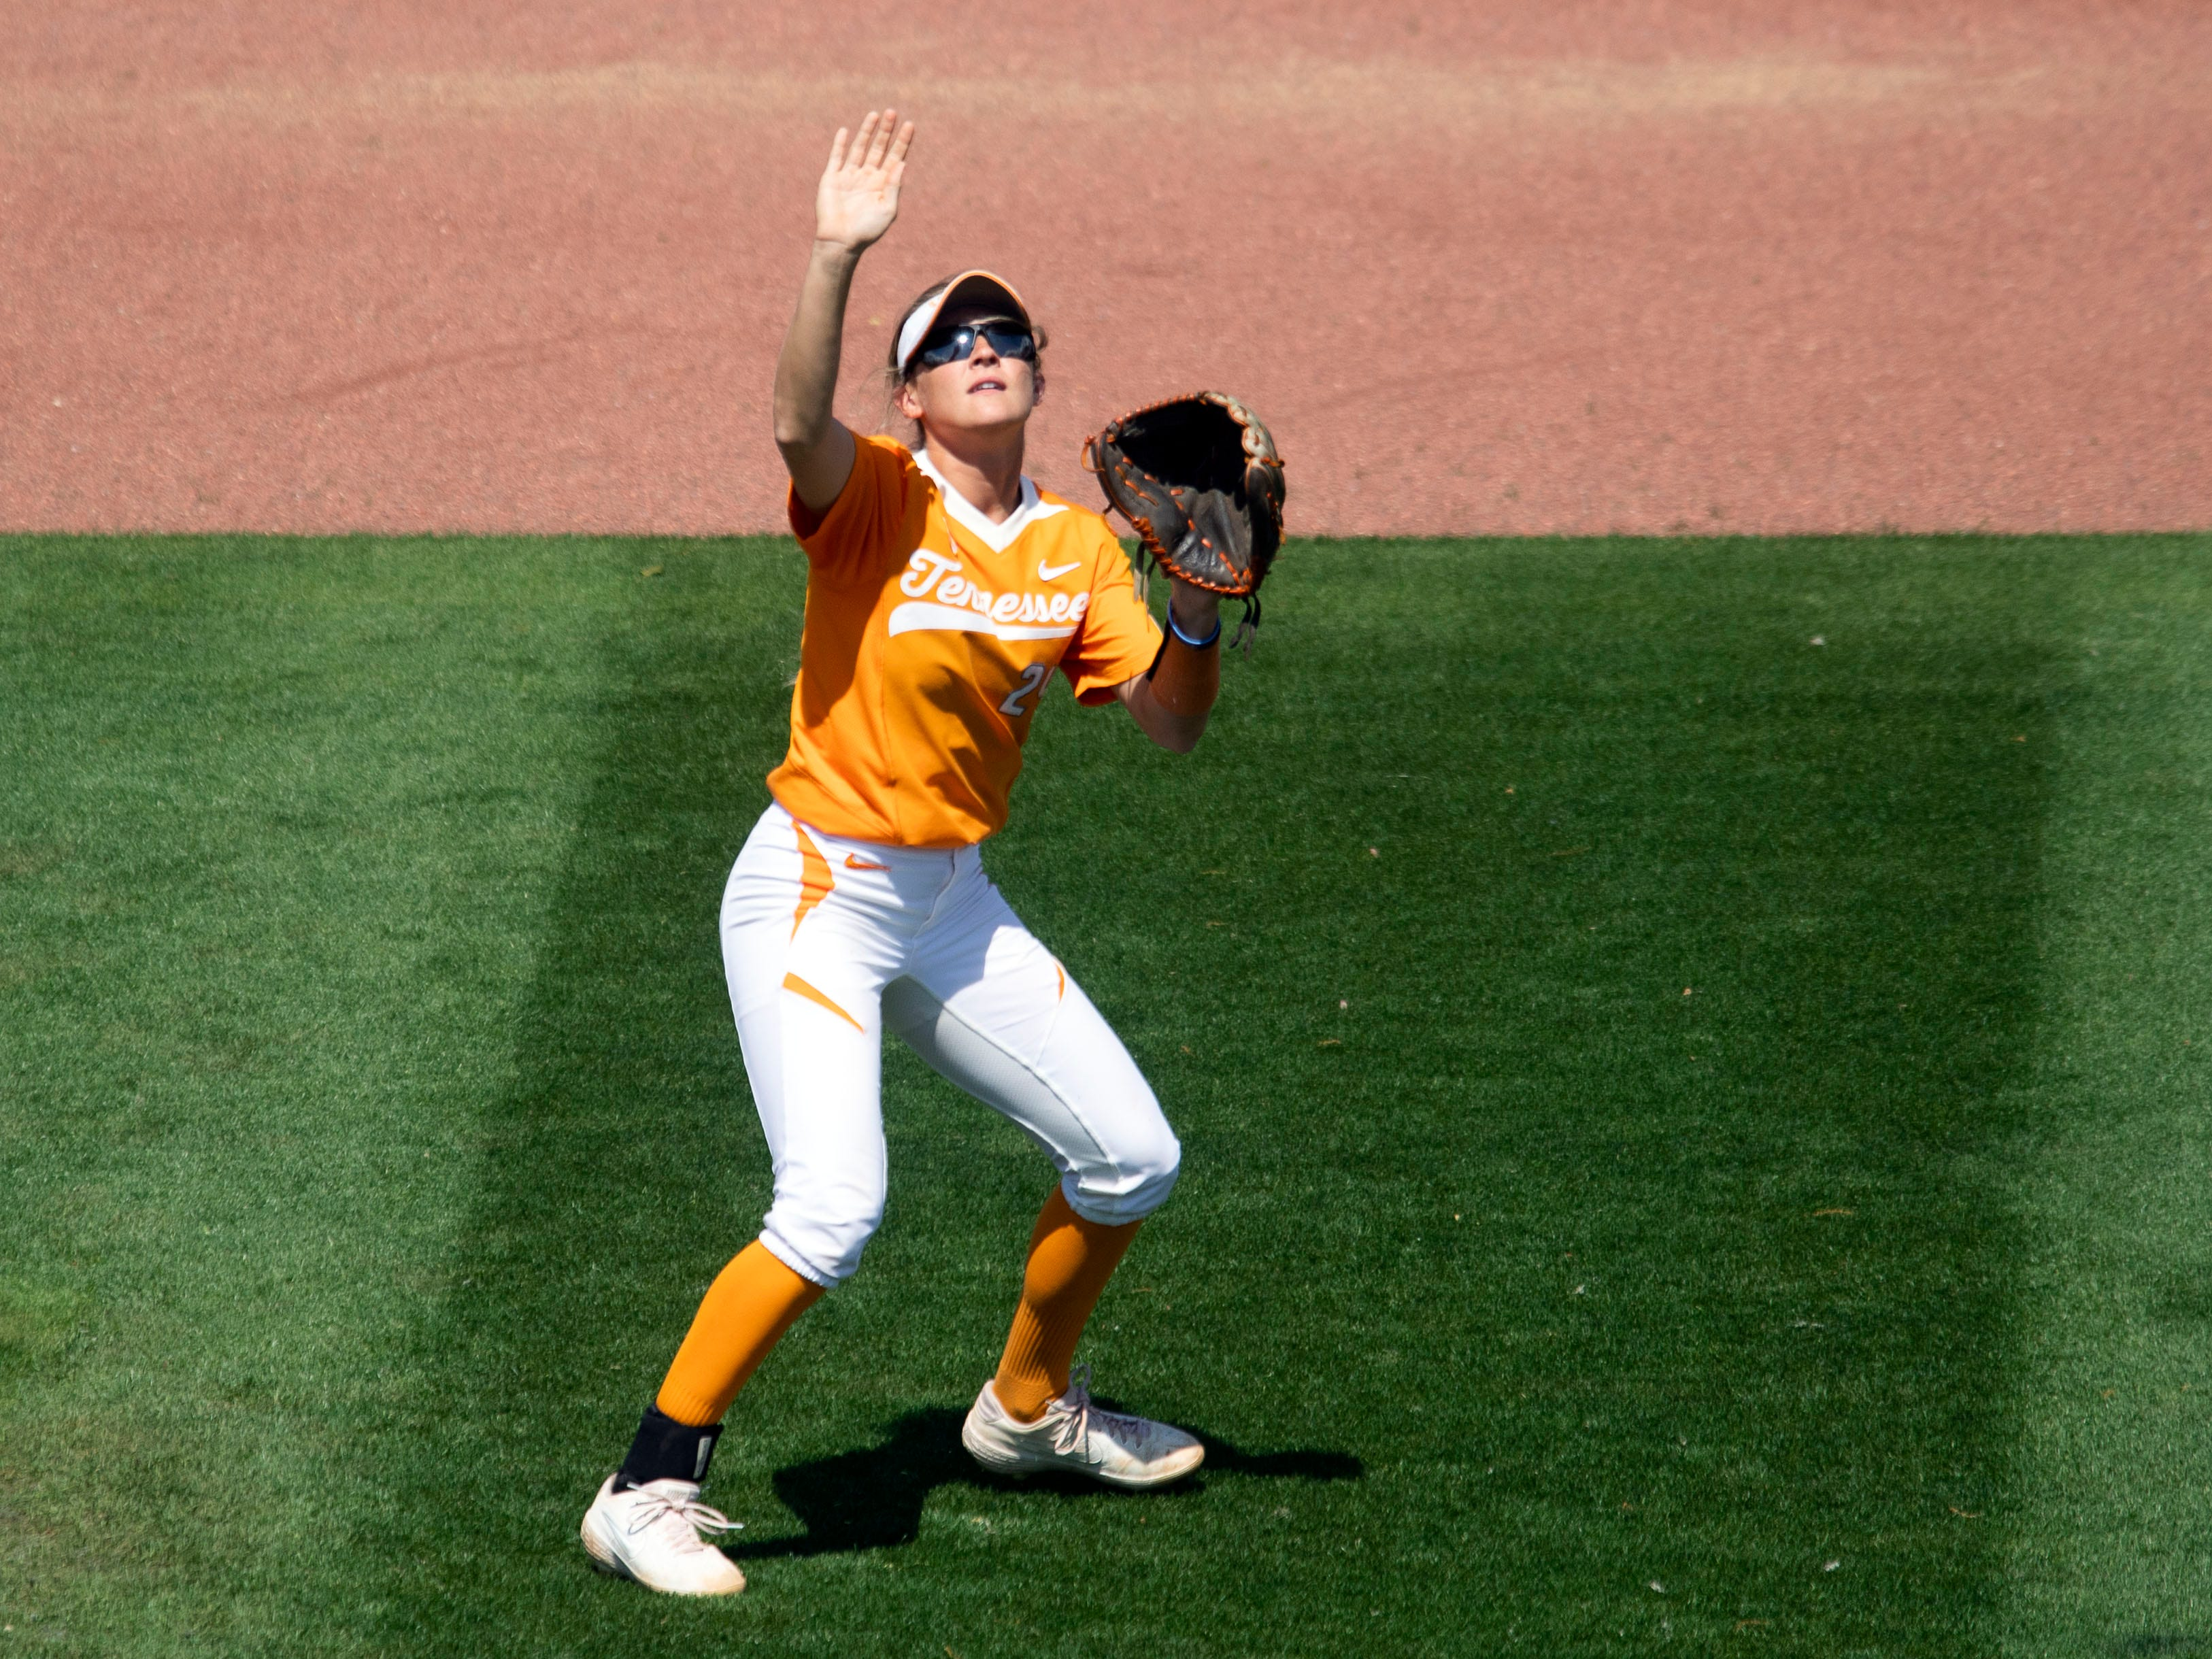 Tennessee's Cailin Hannon (24) calls for the fly ball in the game against Mississippi State at Sherri Parker Lee Stadium on Sunday, April 14, 2019.